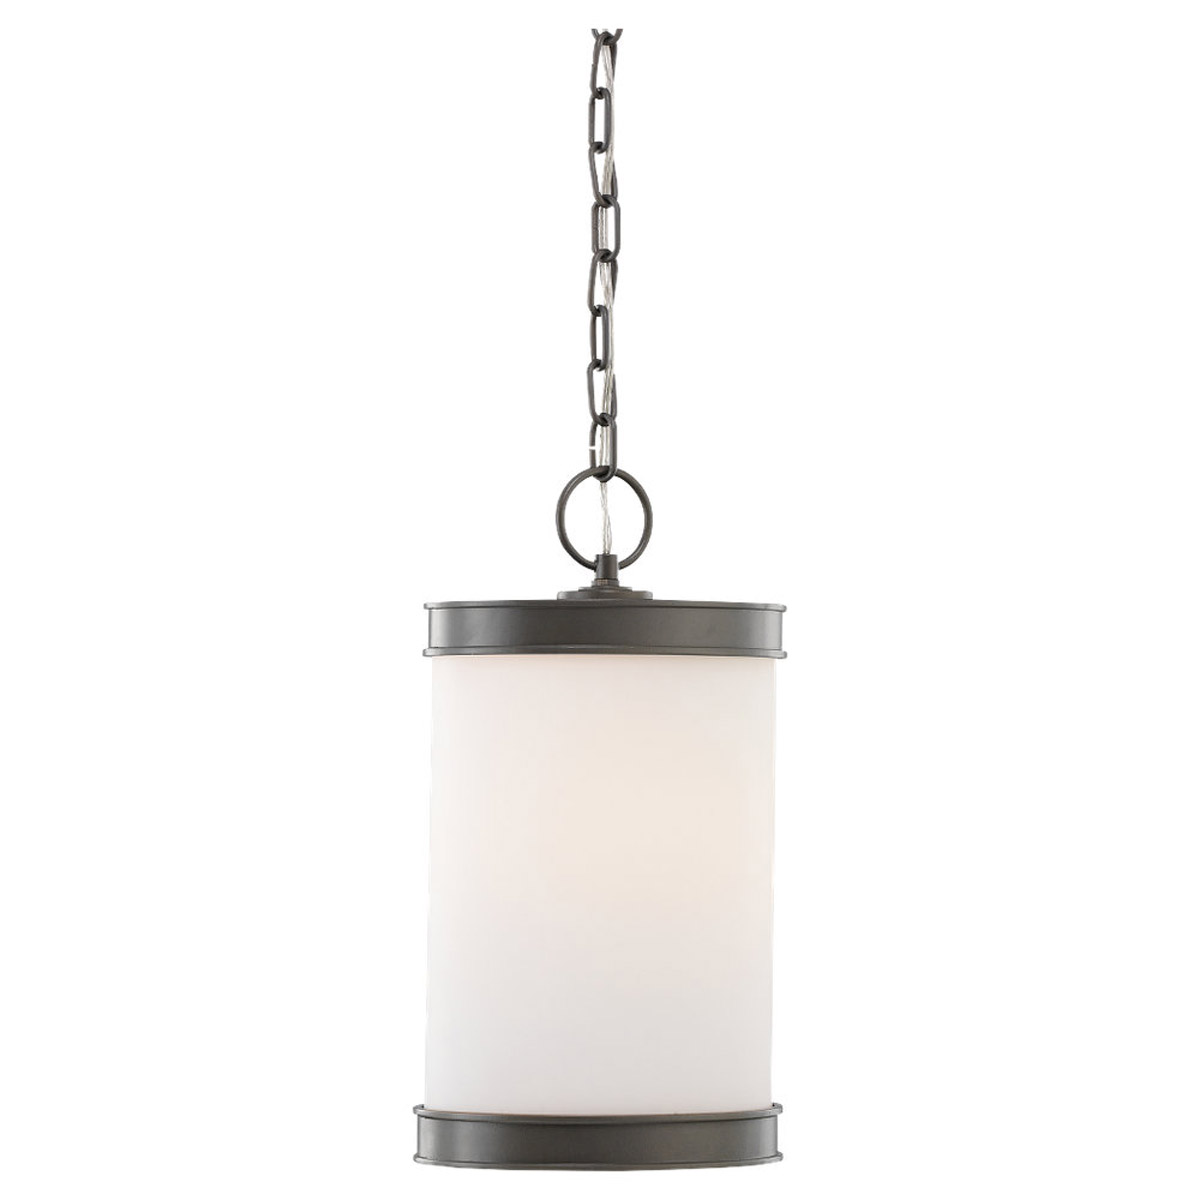 Sea Gull Lighting Amsterdam 1 Light Outdoor Pendant in Rustic Pewter 60885-850 photo